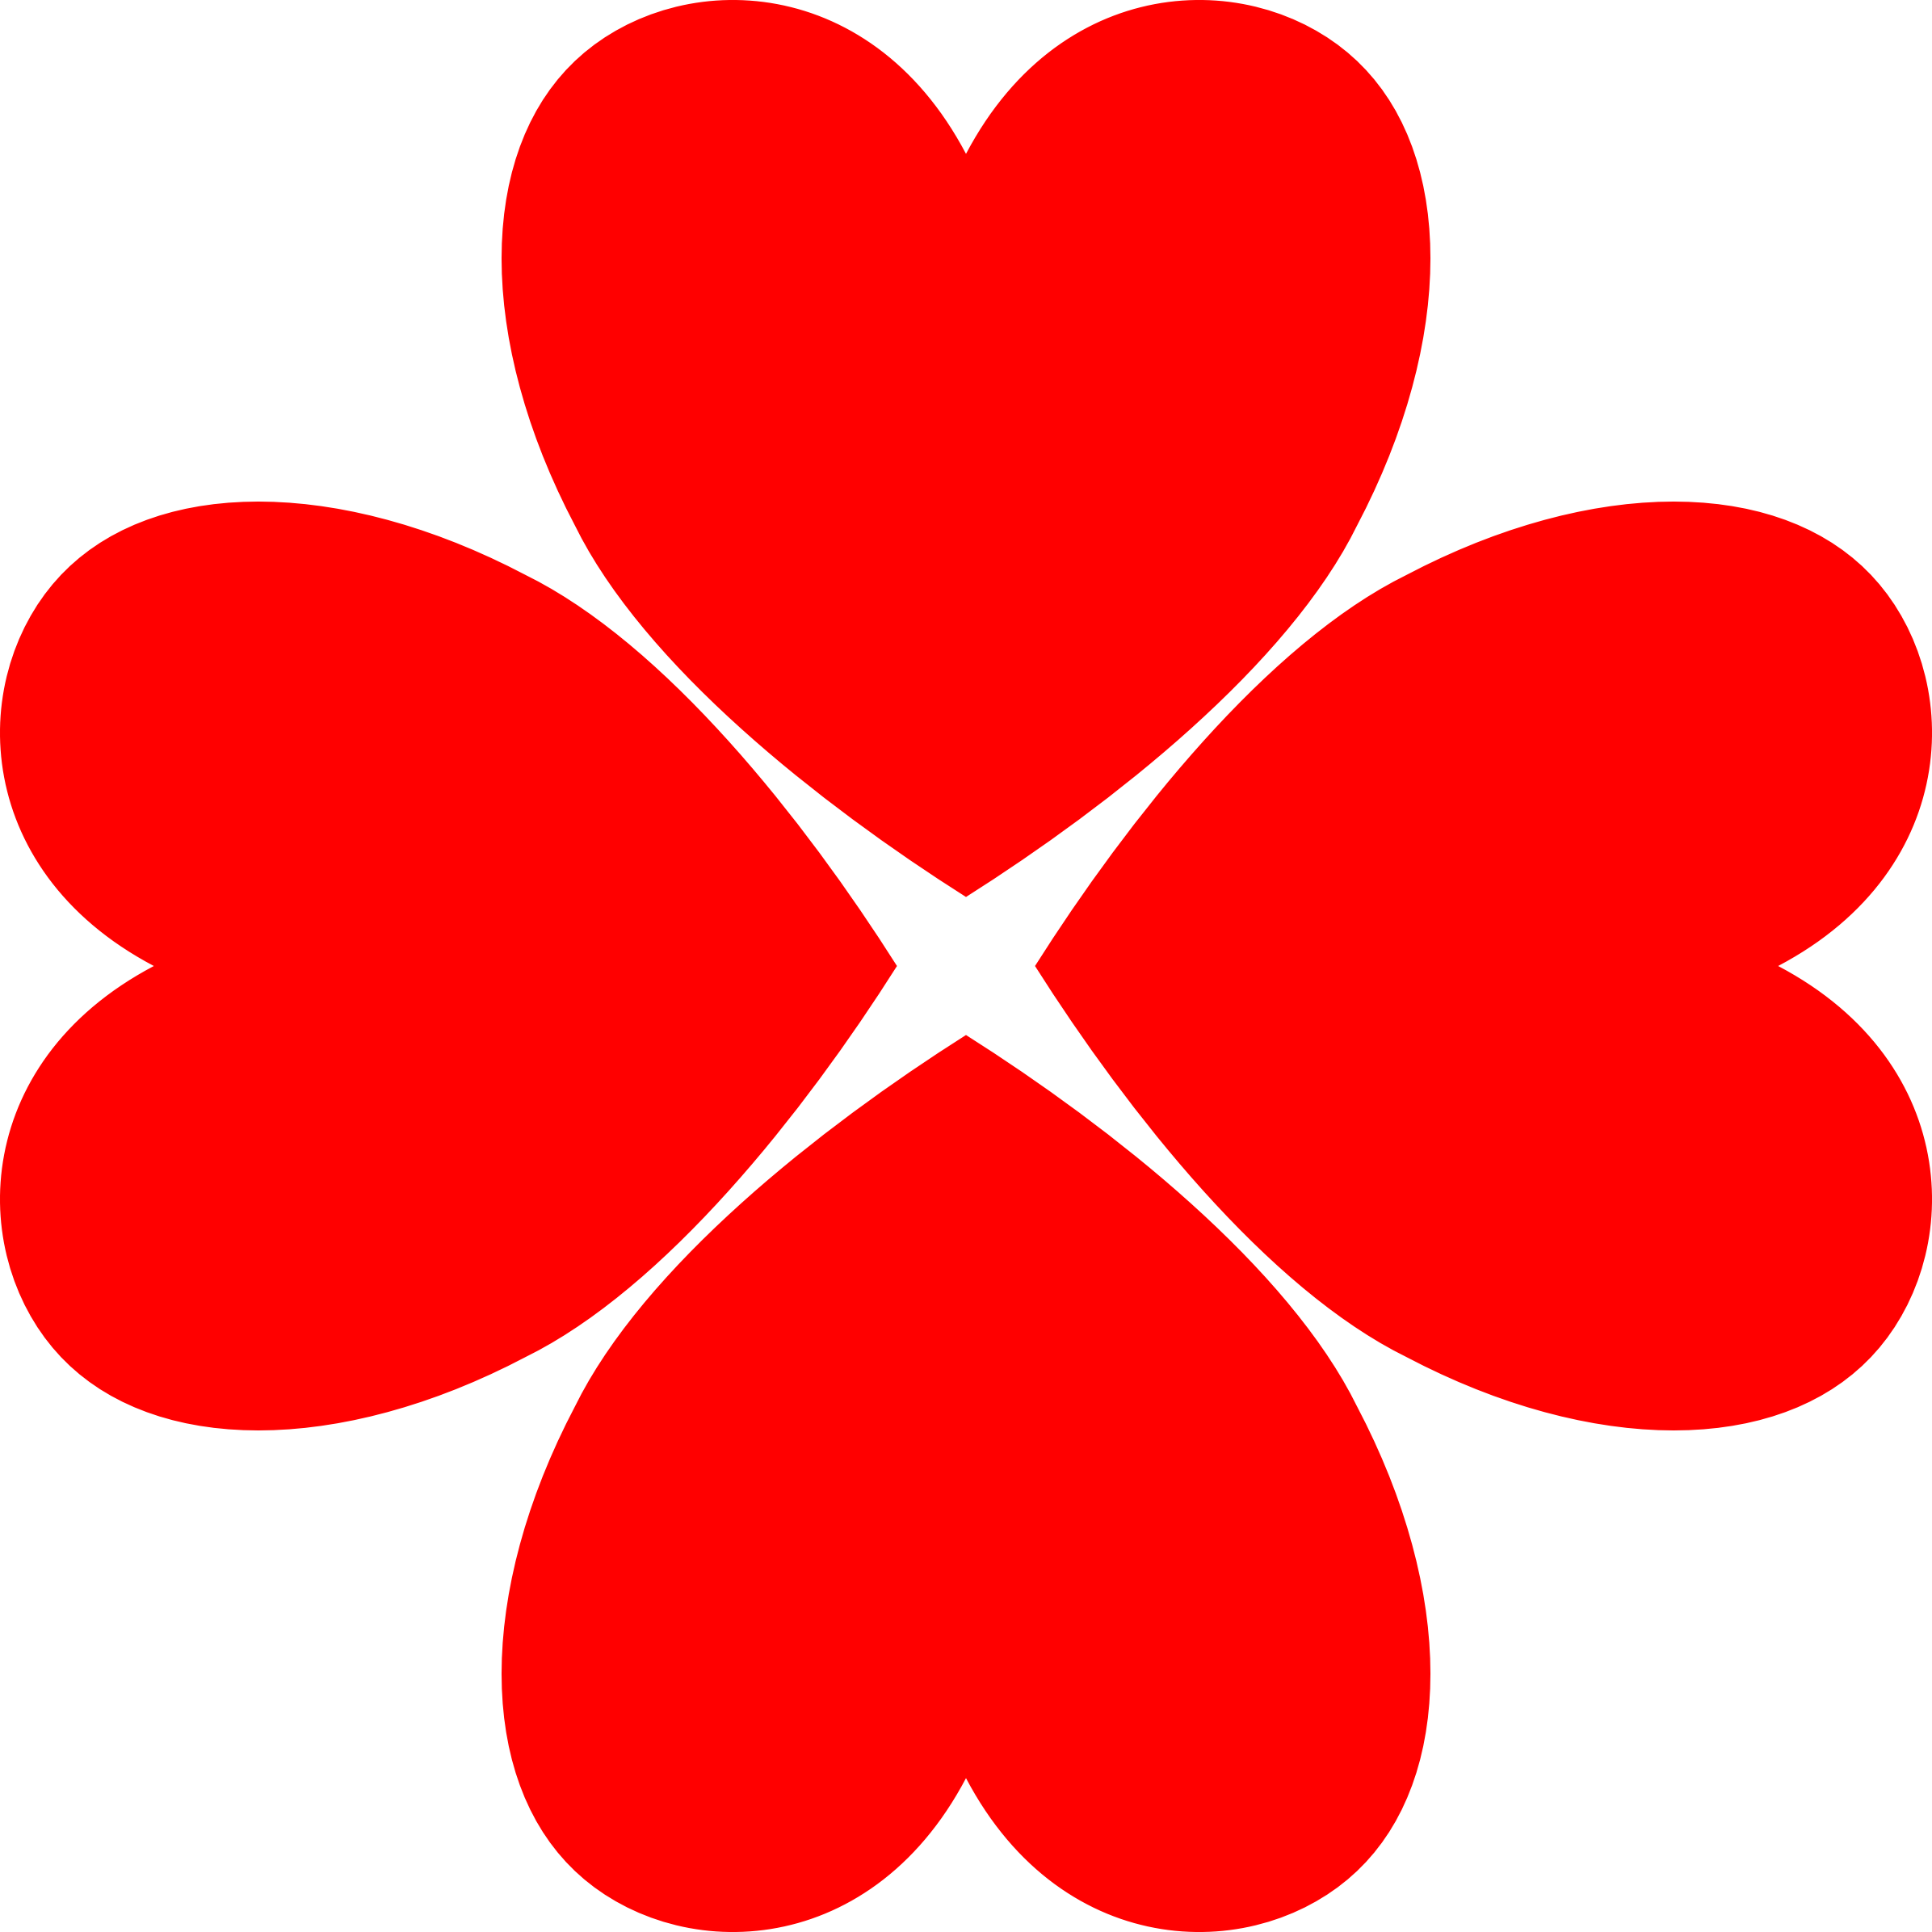 Four heart clover big. Hearts clipart medical